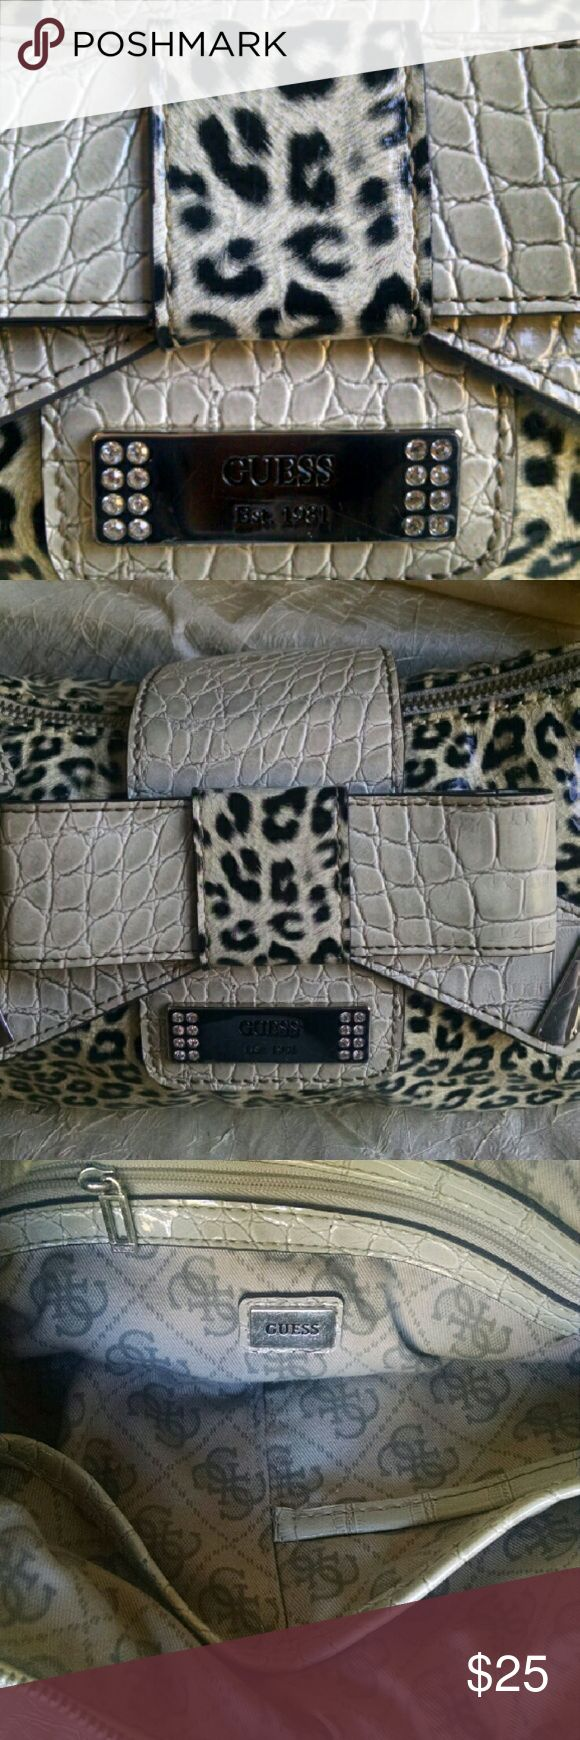 Guess Animal Printed Shoulder Bag Purse Authentic, super clean, small, normal wear Guess  Bags Shoulder Bags